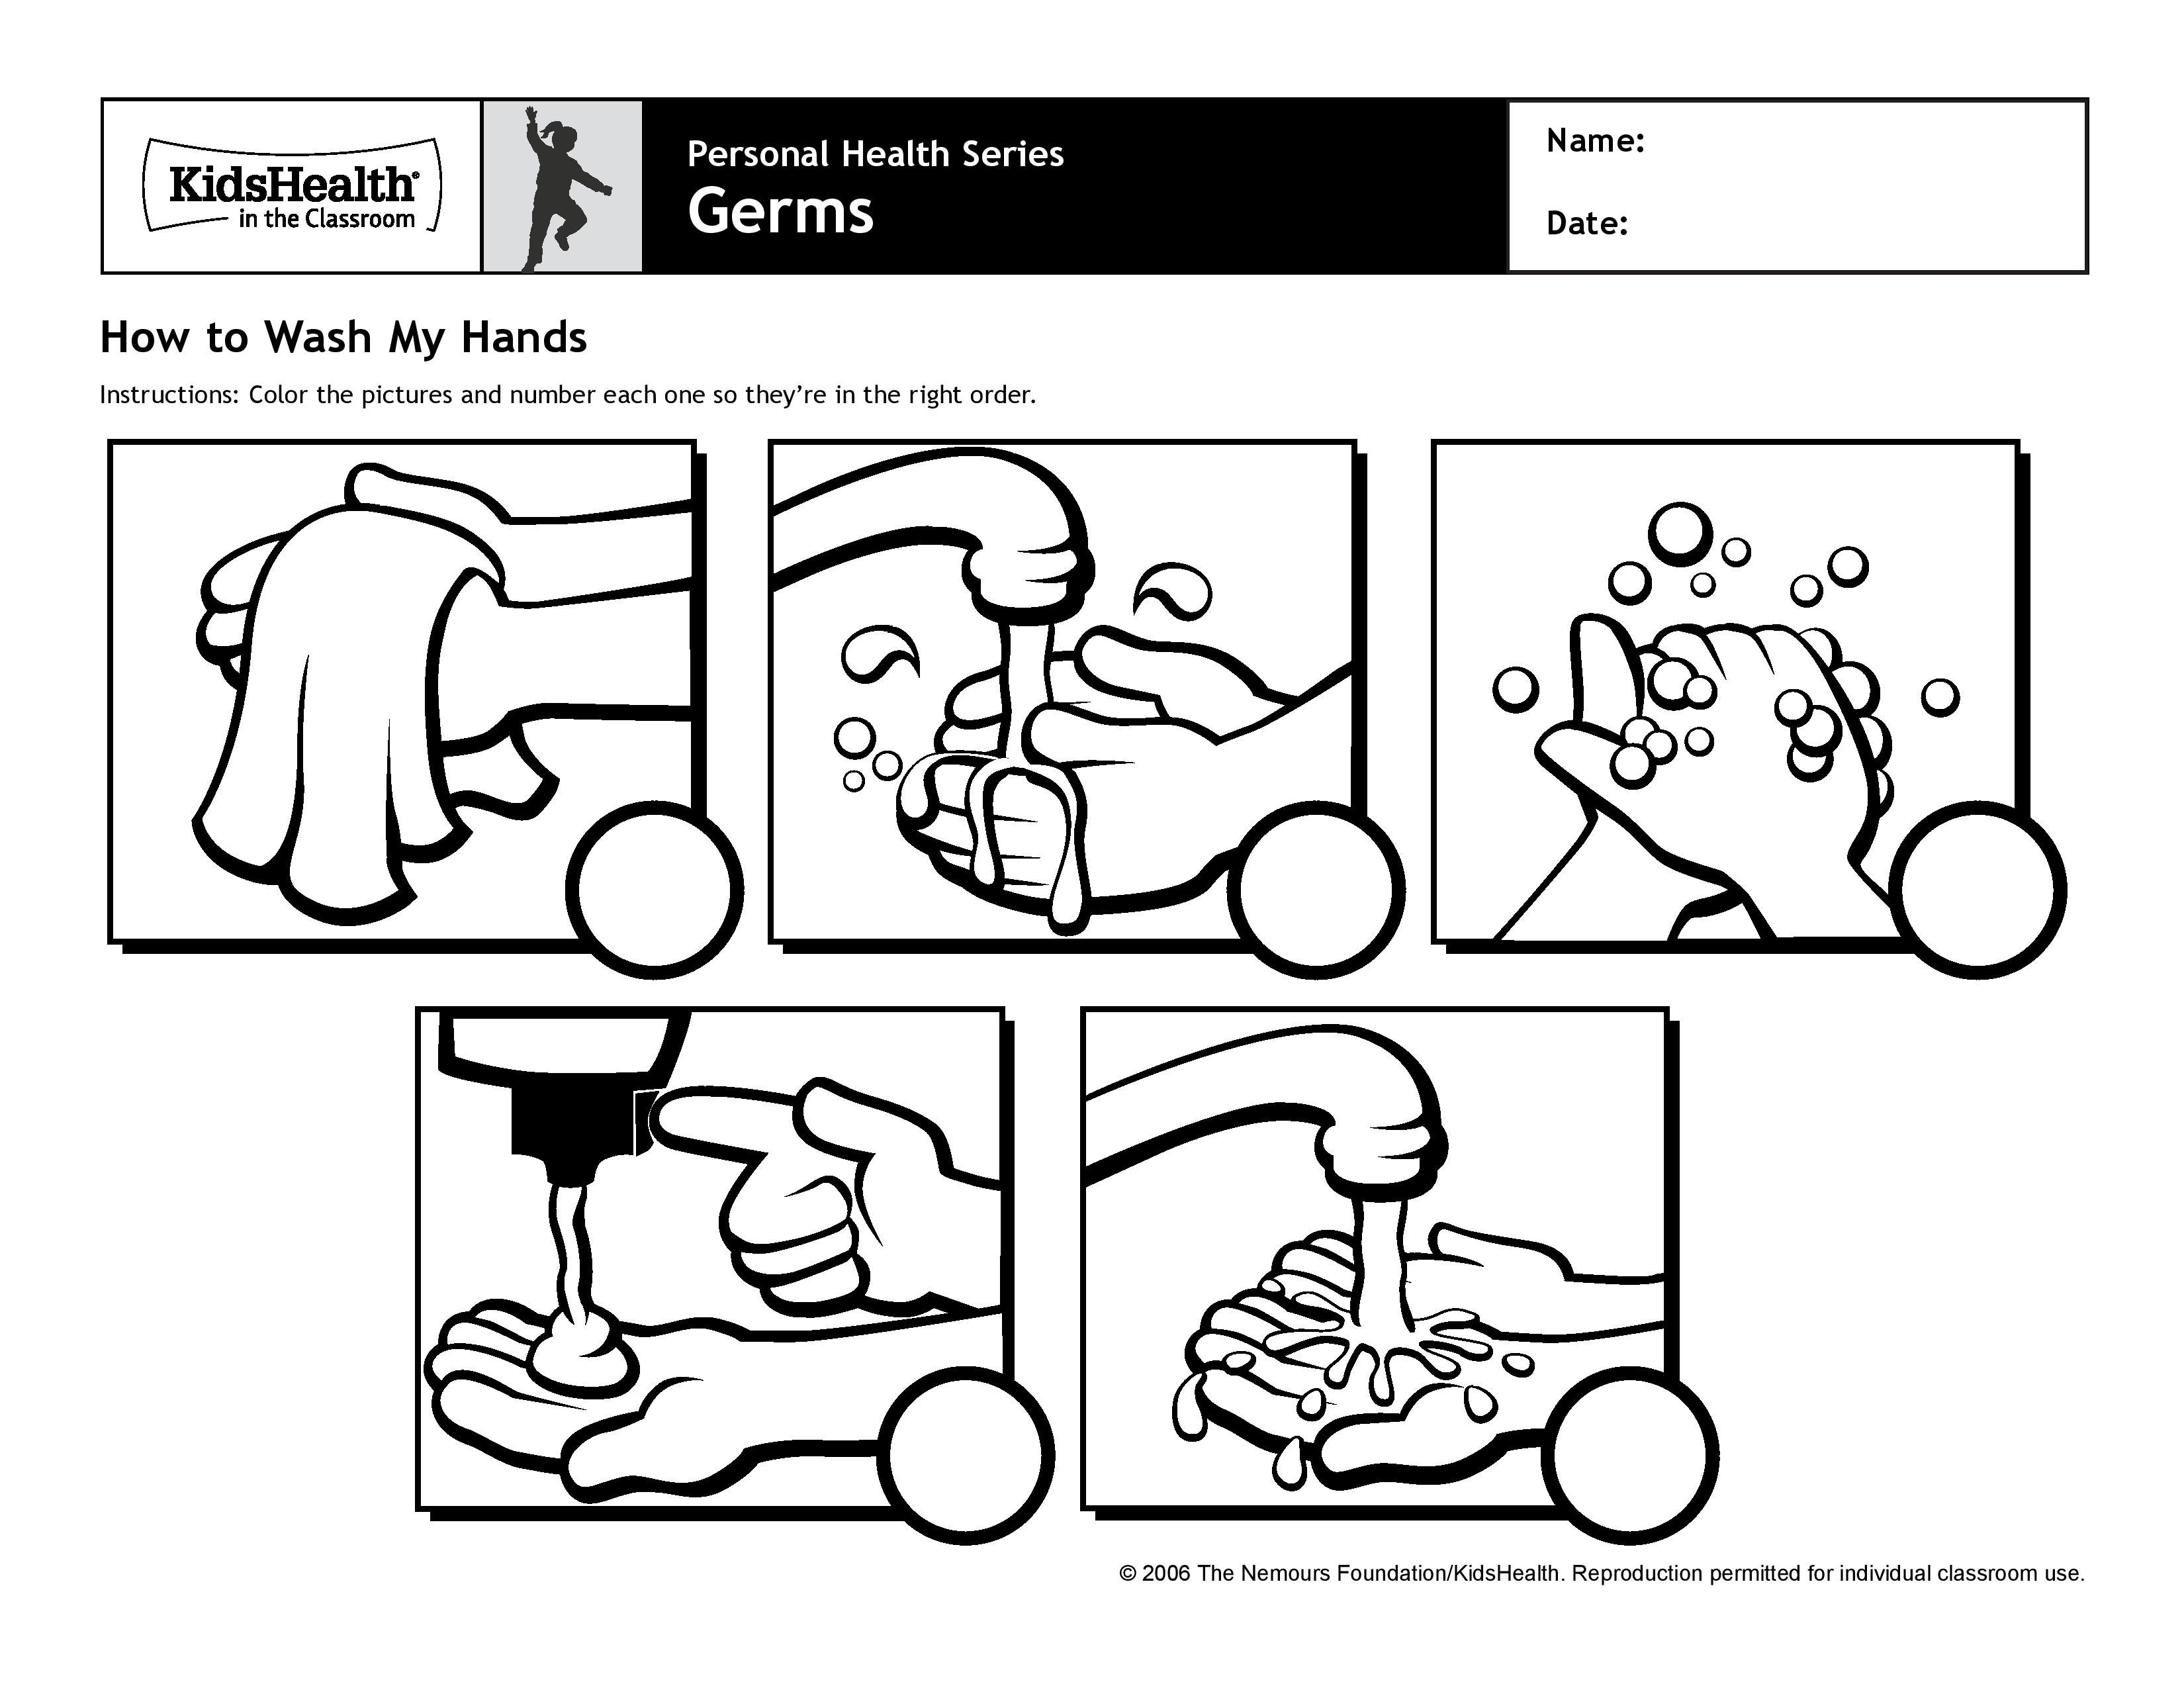 Washing Hands Coloring Page Hand Pages For Kids | Hand washing ... | 2550x3300